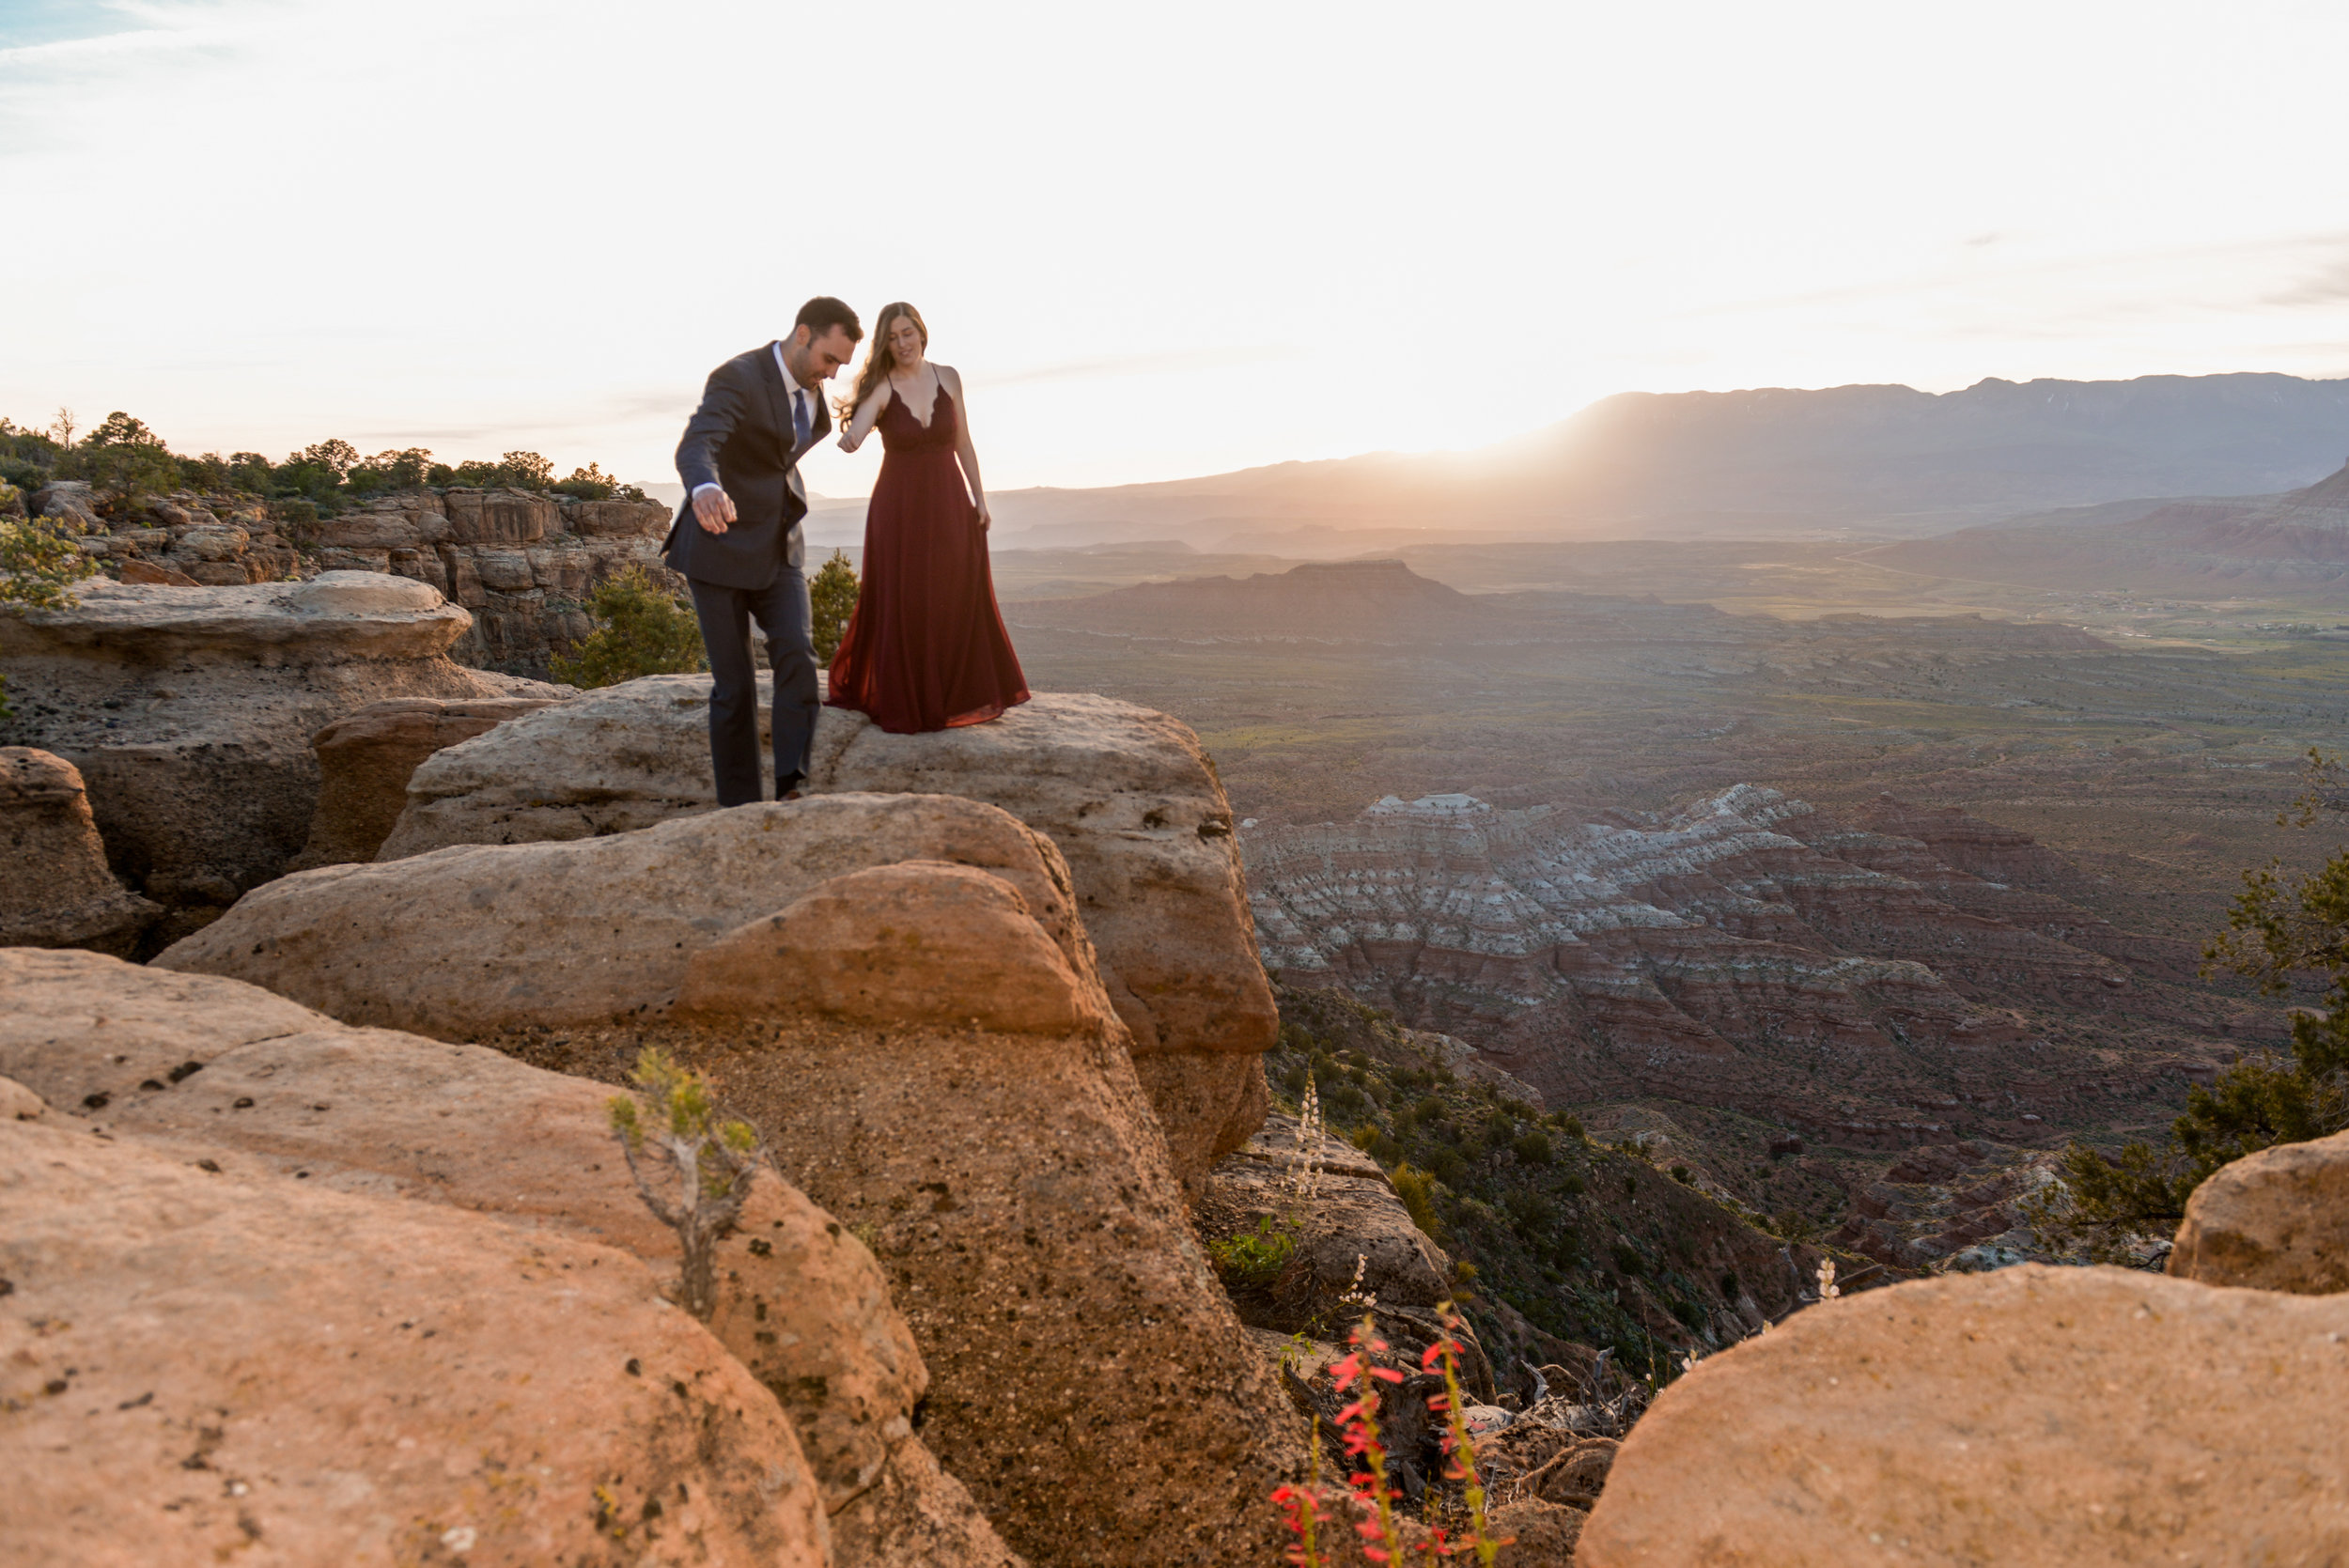 zionnationalparkengagementphotos (60 of 53).jpg